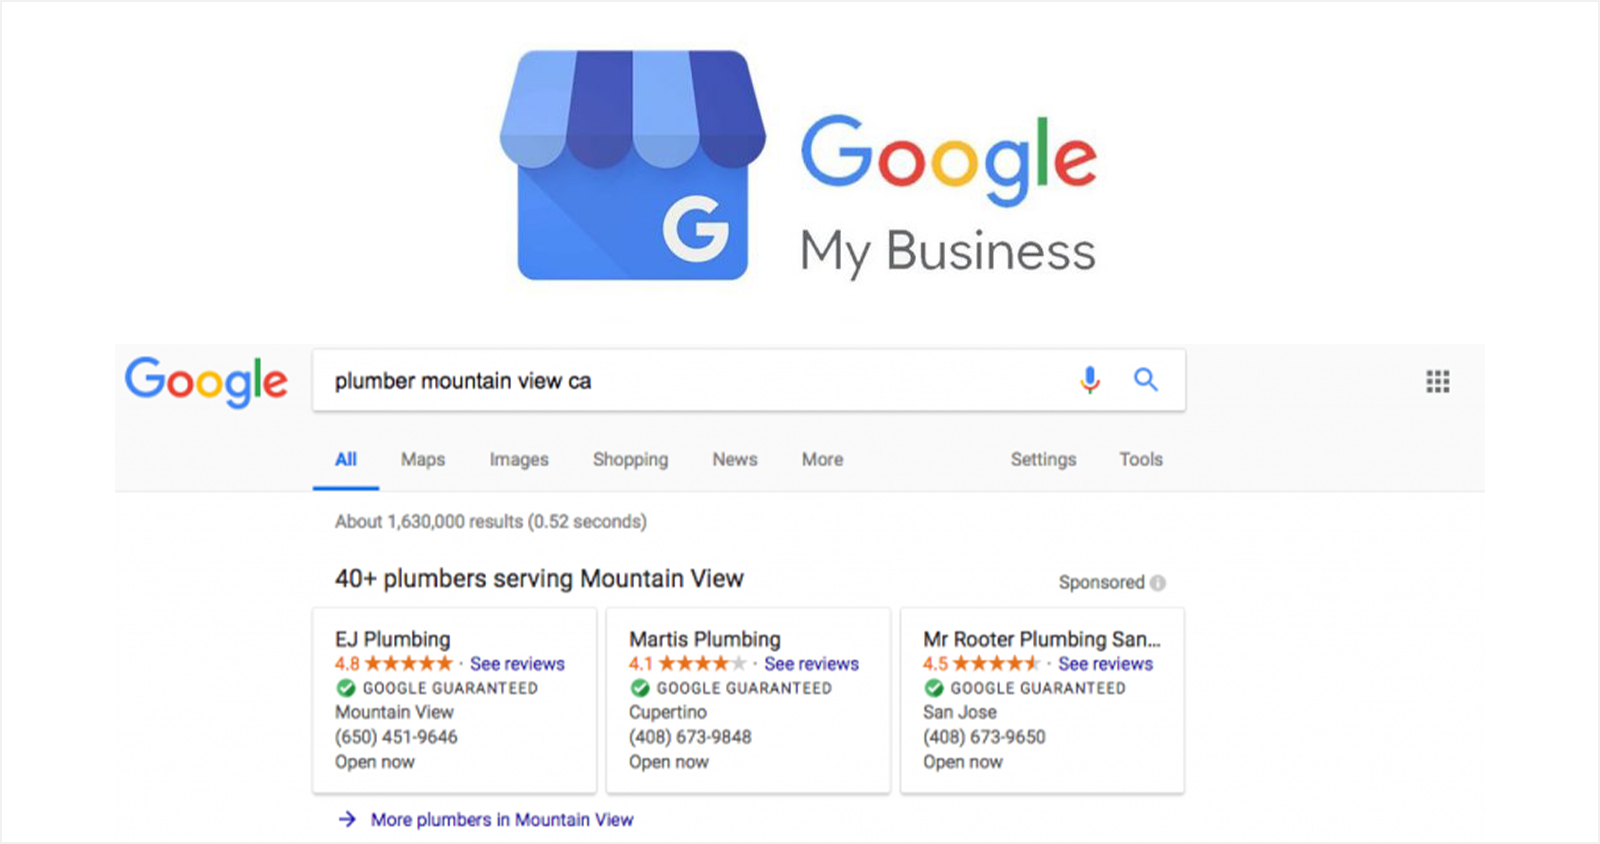 Google My Business payant ou gratuit en France ?